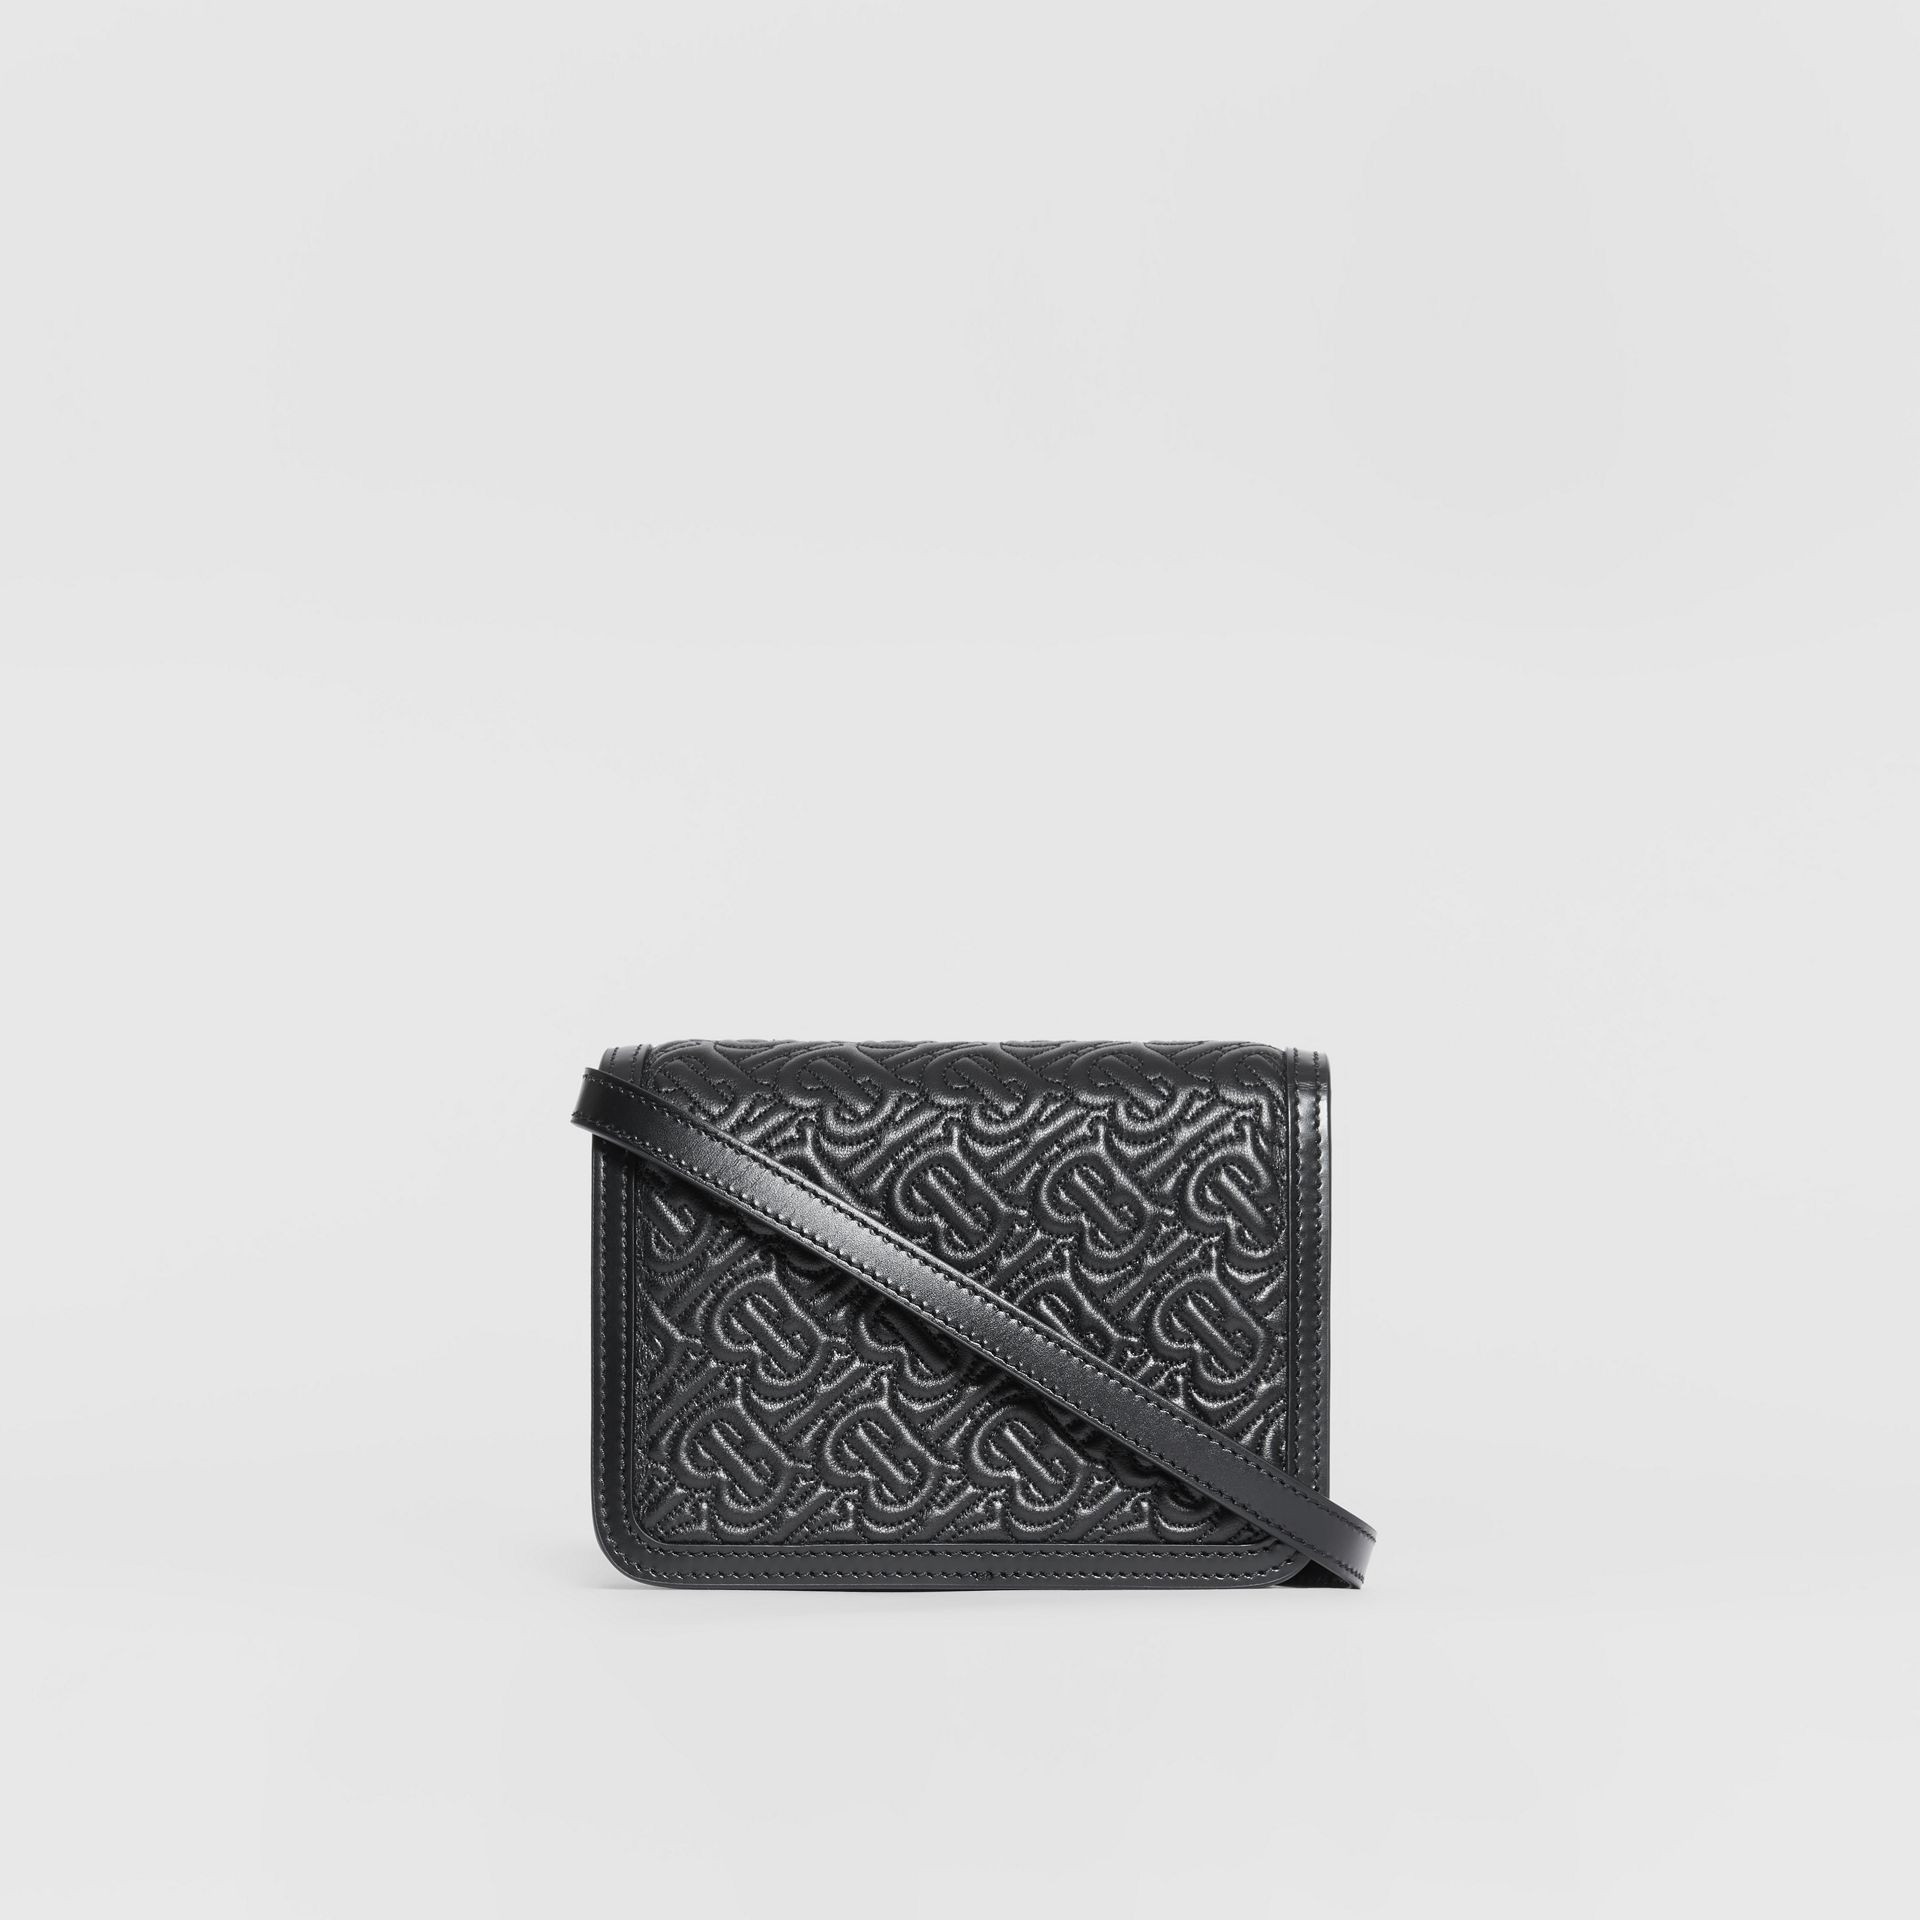 Mini Quilted Monogram Lambskin TB Bag in Black - Women | Burberry - gallery image 5